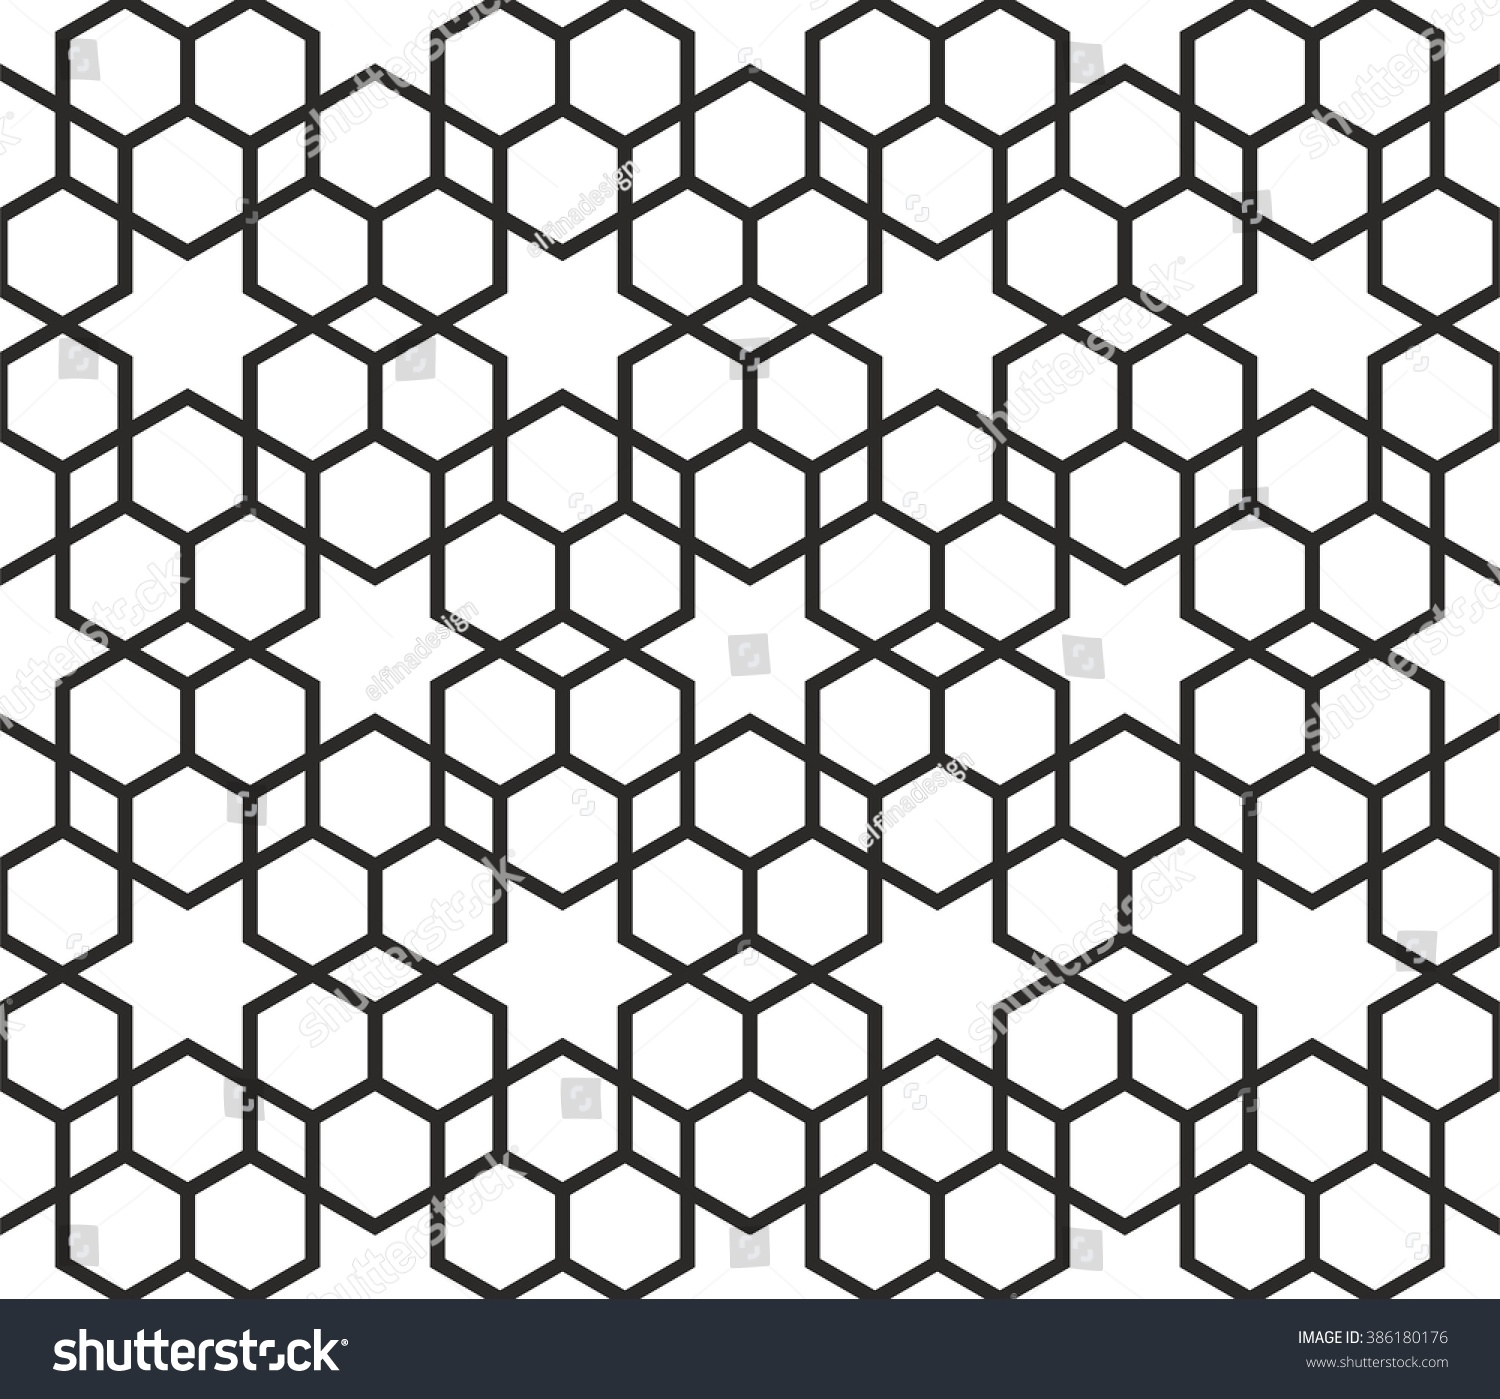 Arabic Star Texture, Monochrome Islamic Pattern, Hexagons Background